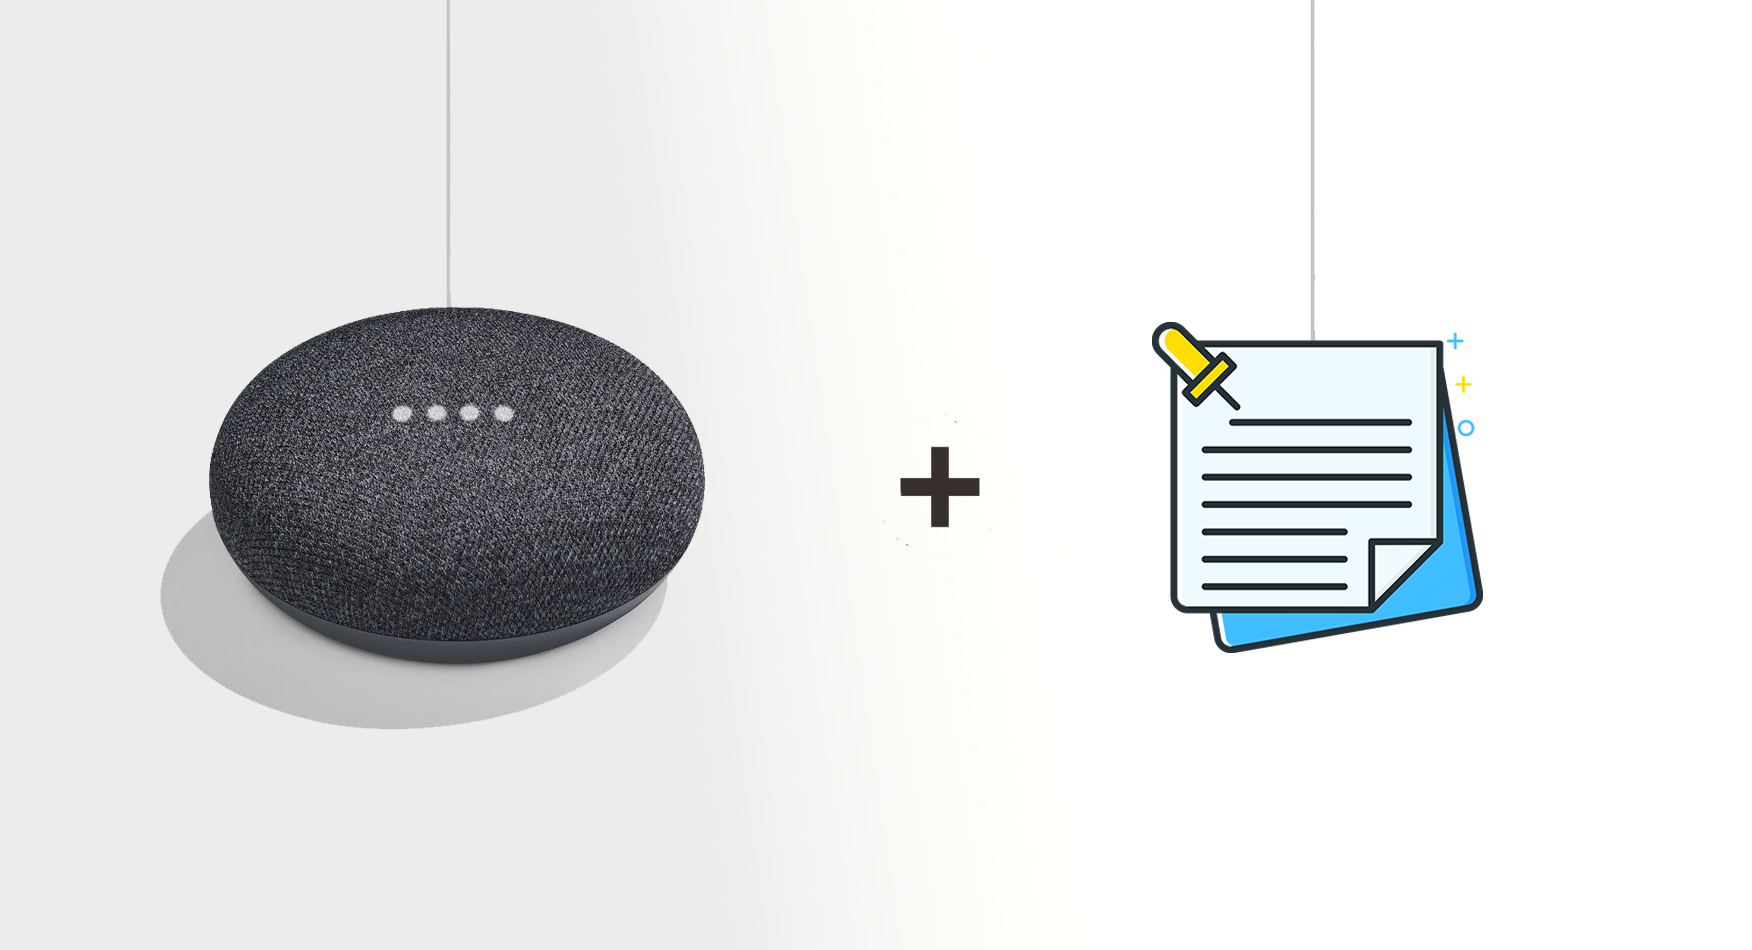 create notes using google home